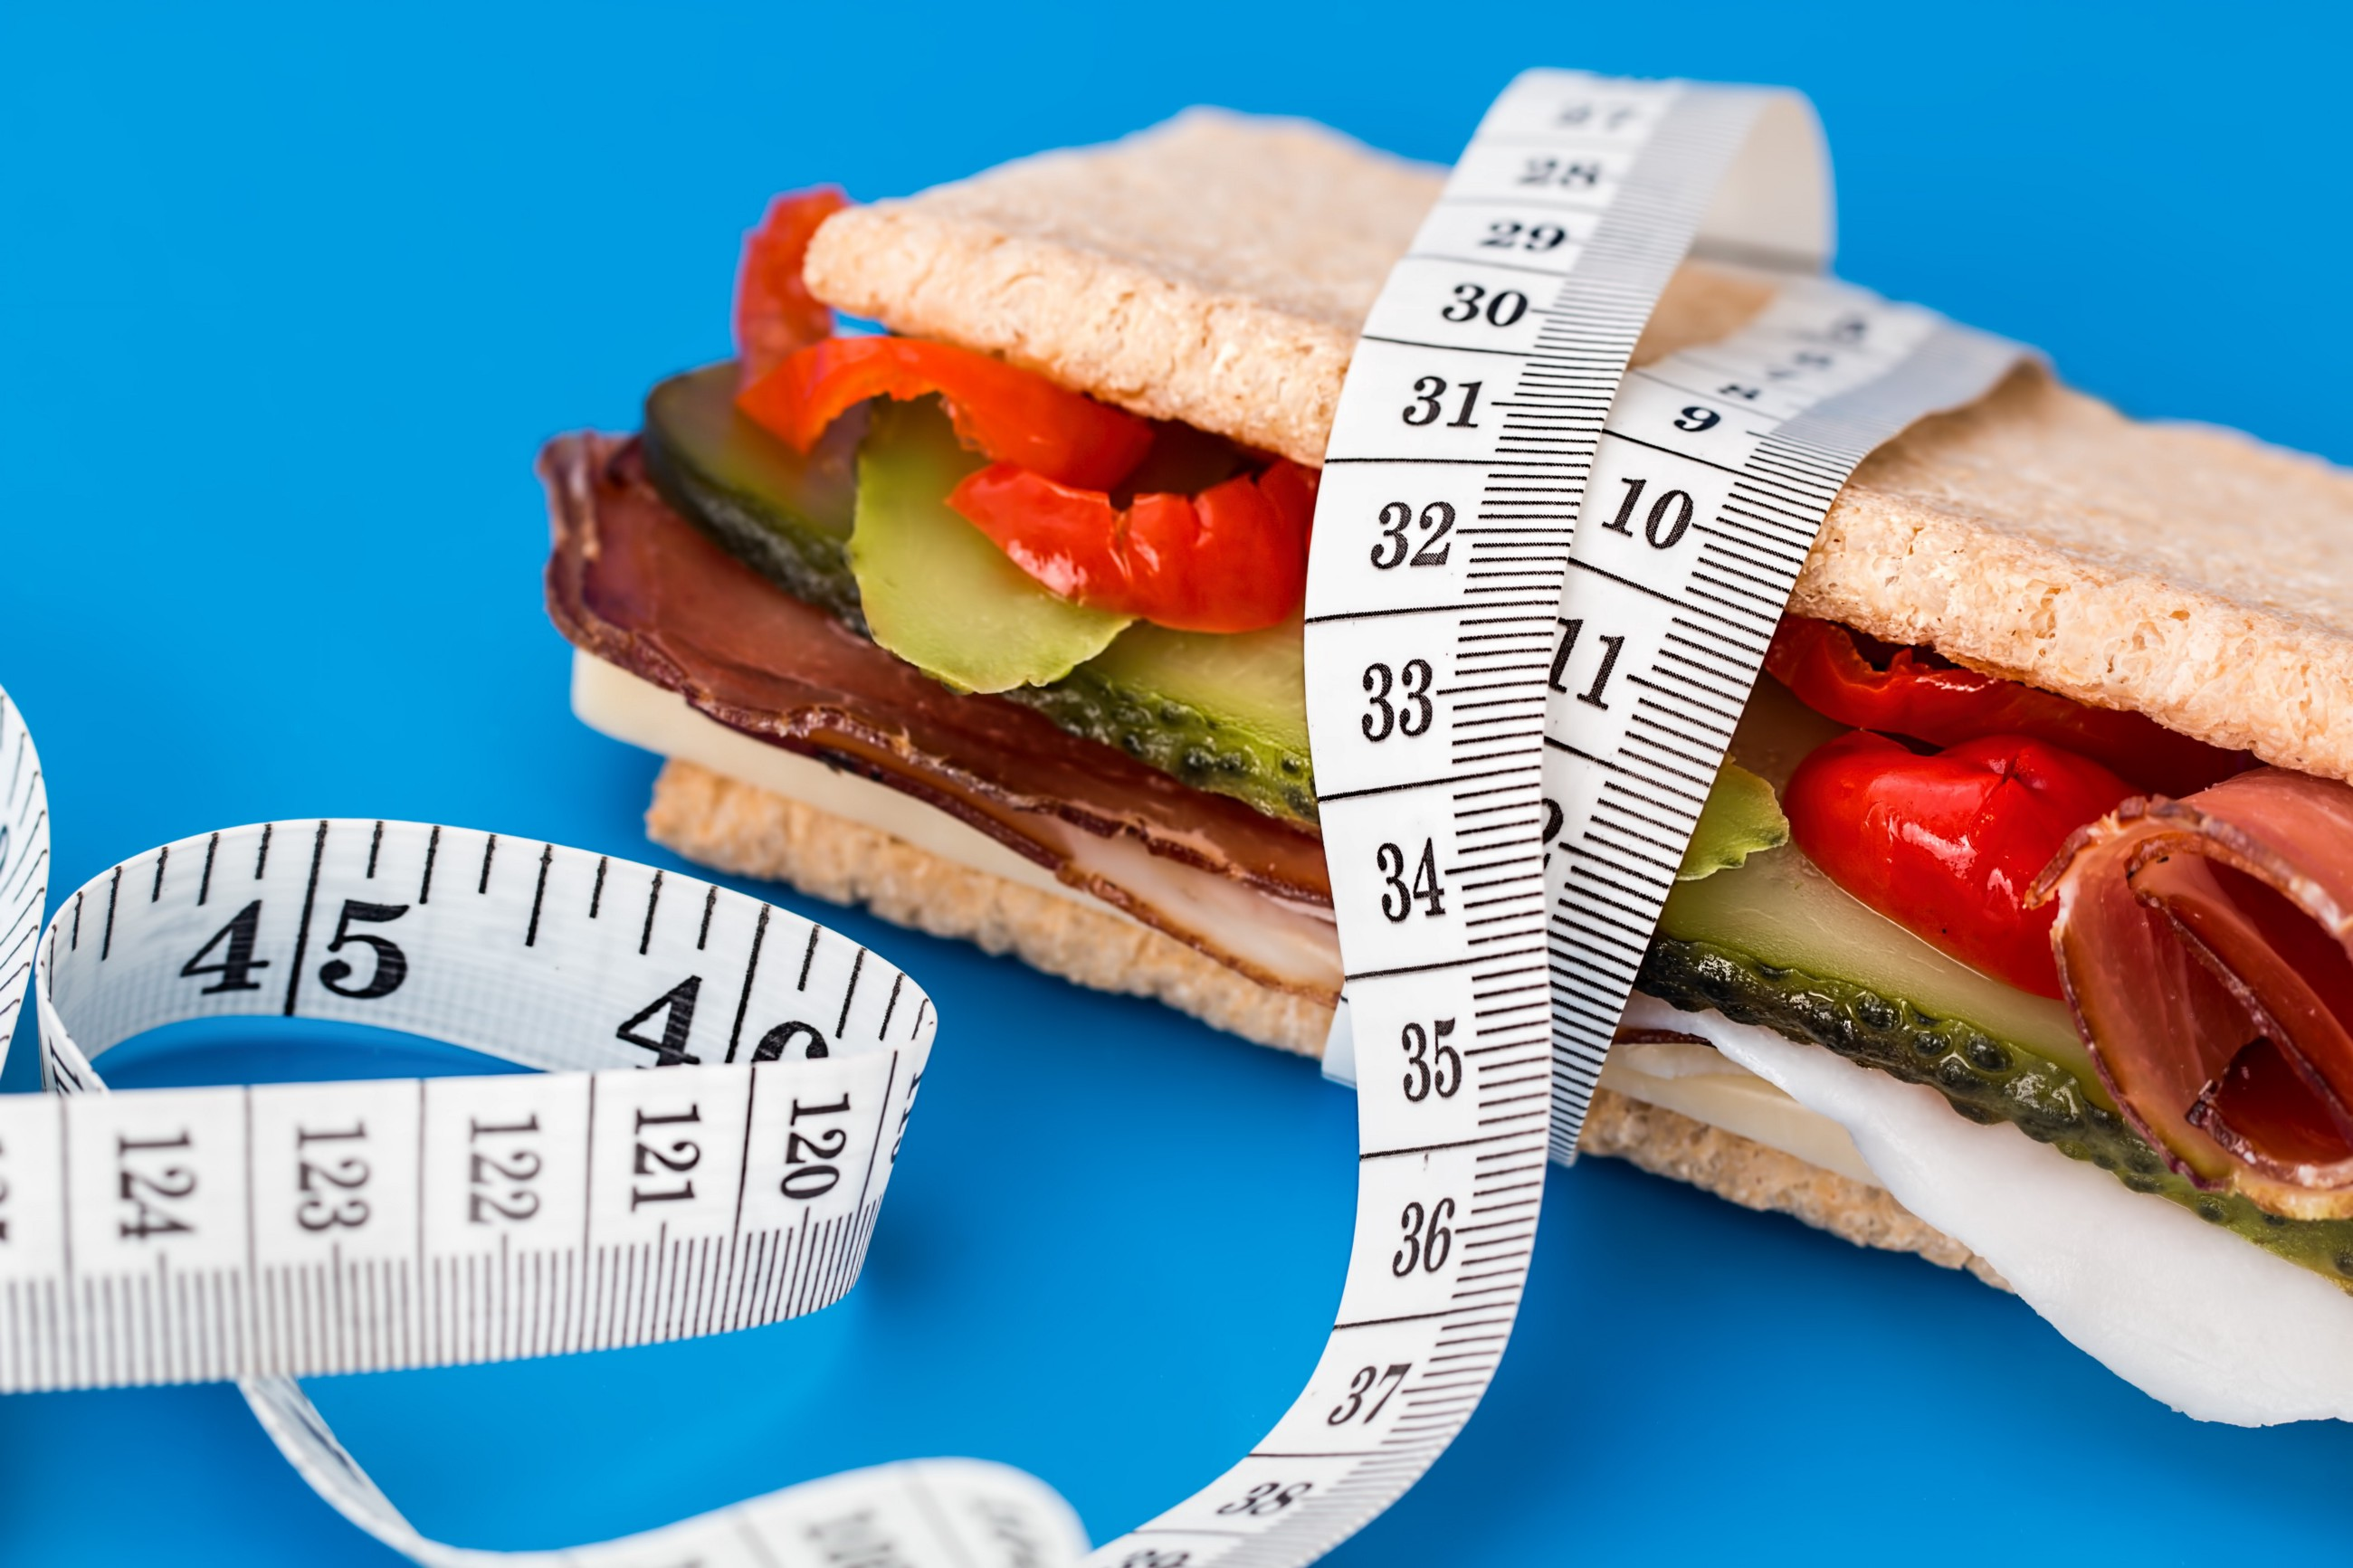 Nudging With Calorie Counts: Health and Eating Disorders